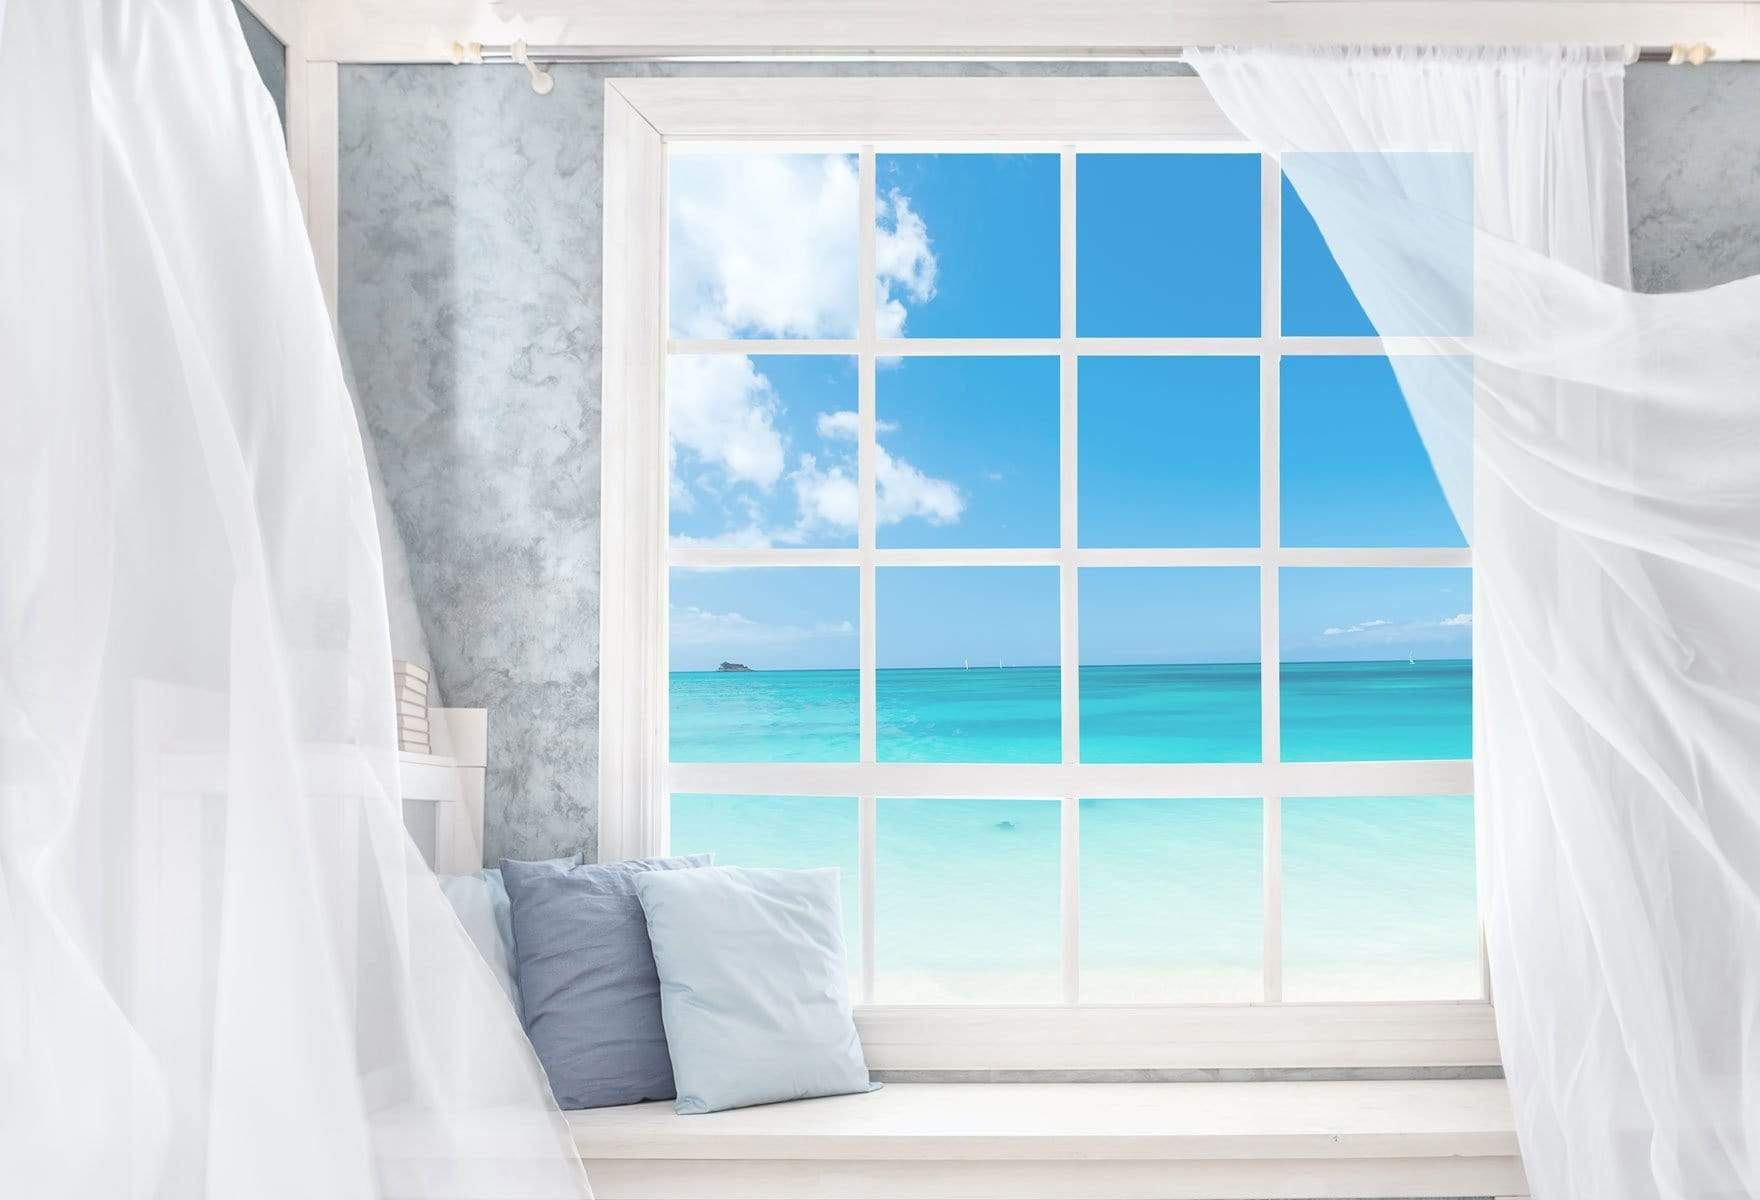 Load image into Gallery viewer, Kate Sea View Outside Window Summer Backdrop Designed by JFCC